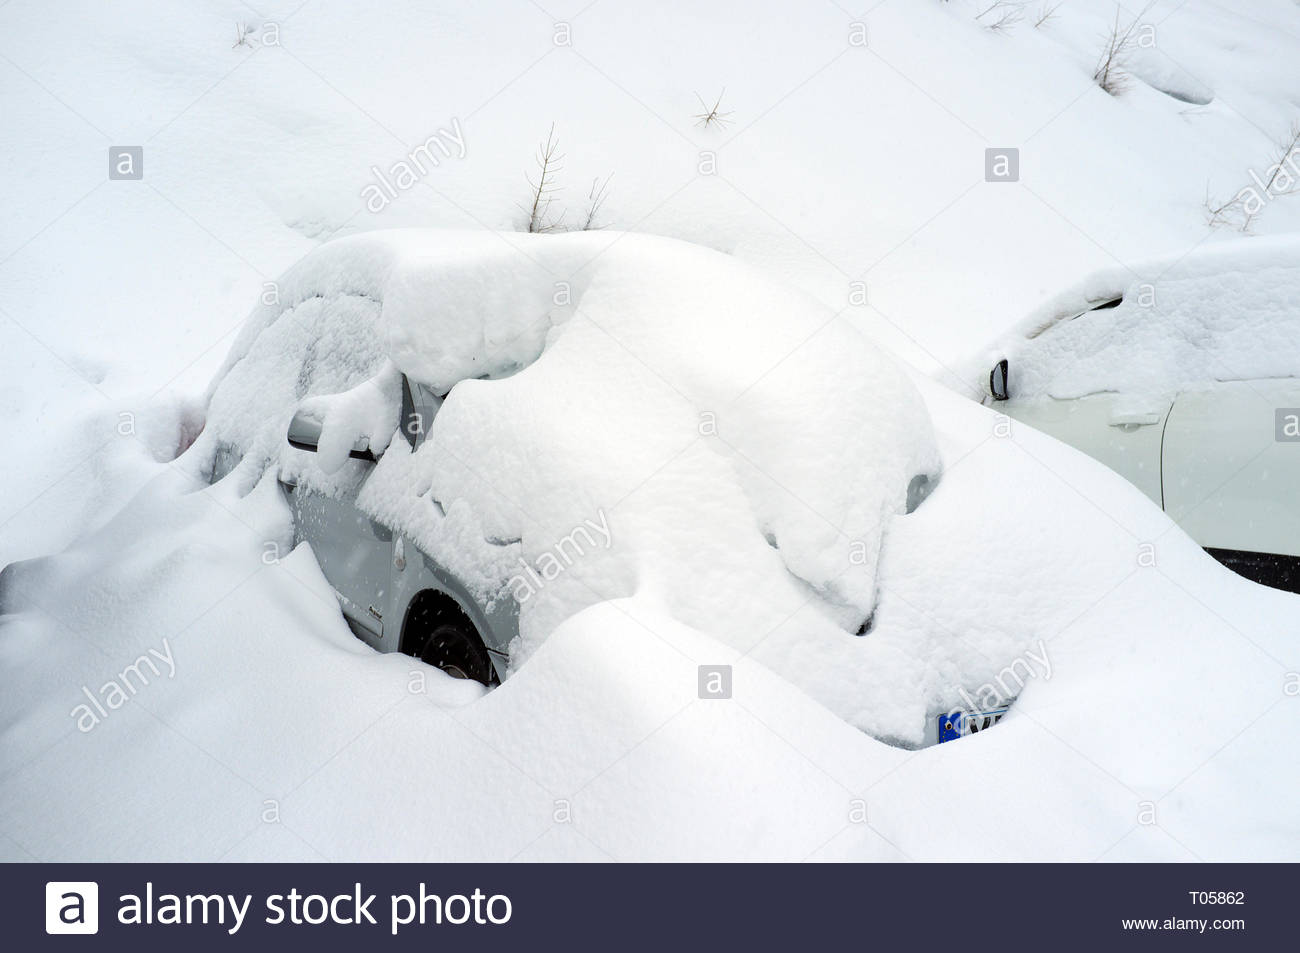 A parked car covered in snow, at the ski resort in Sainte-Foy-Tarentaise, Auvergne-Rhône-Alpes region in south-eastern France. - Stock Image